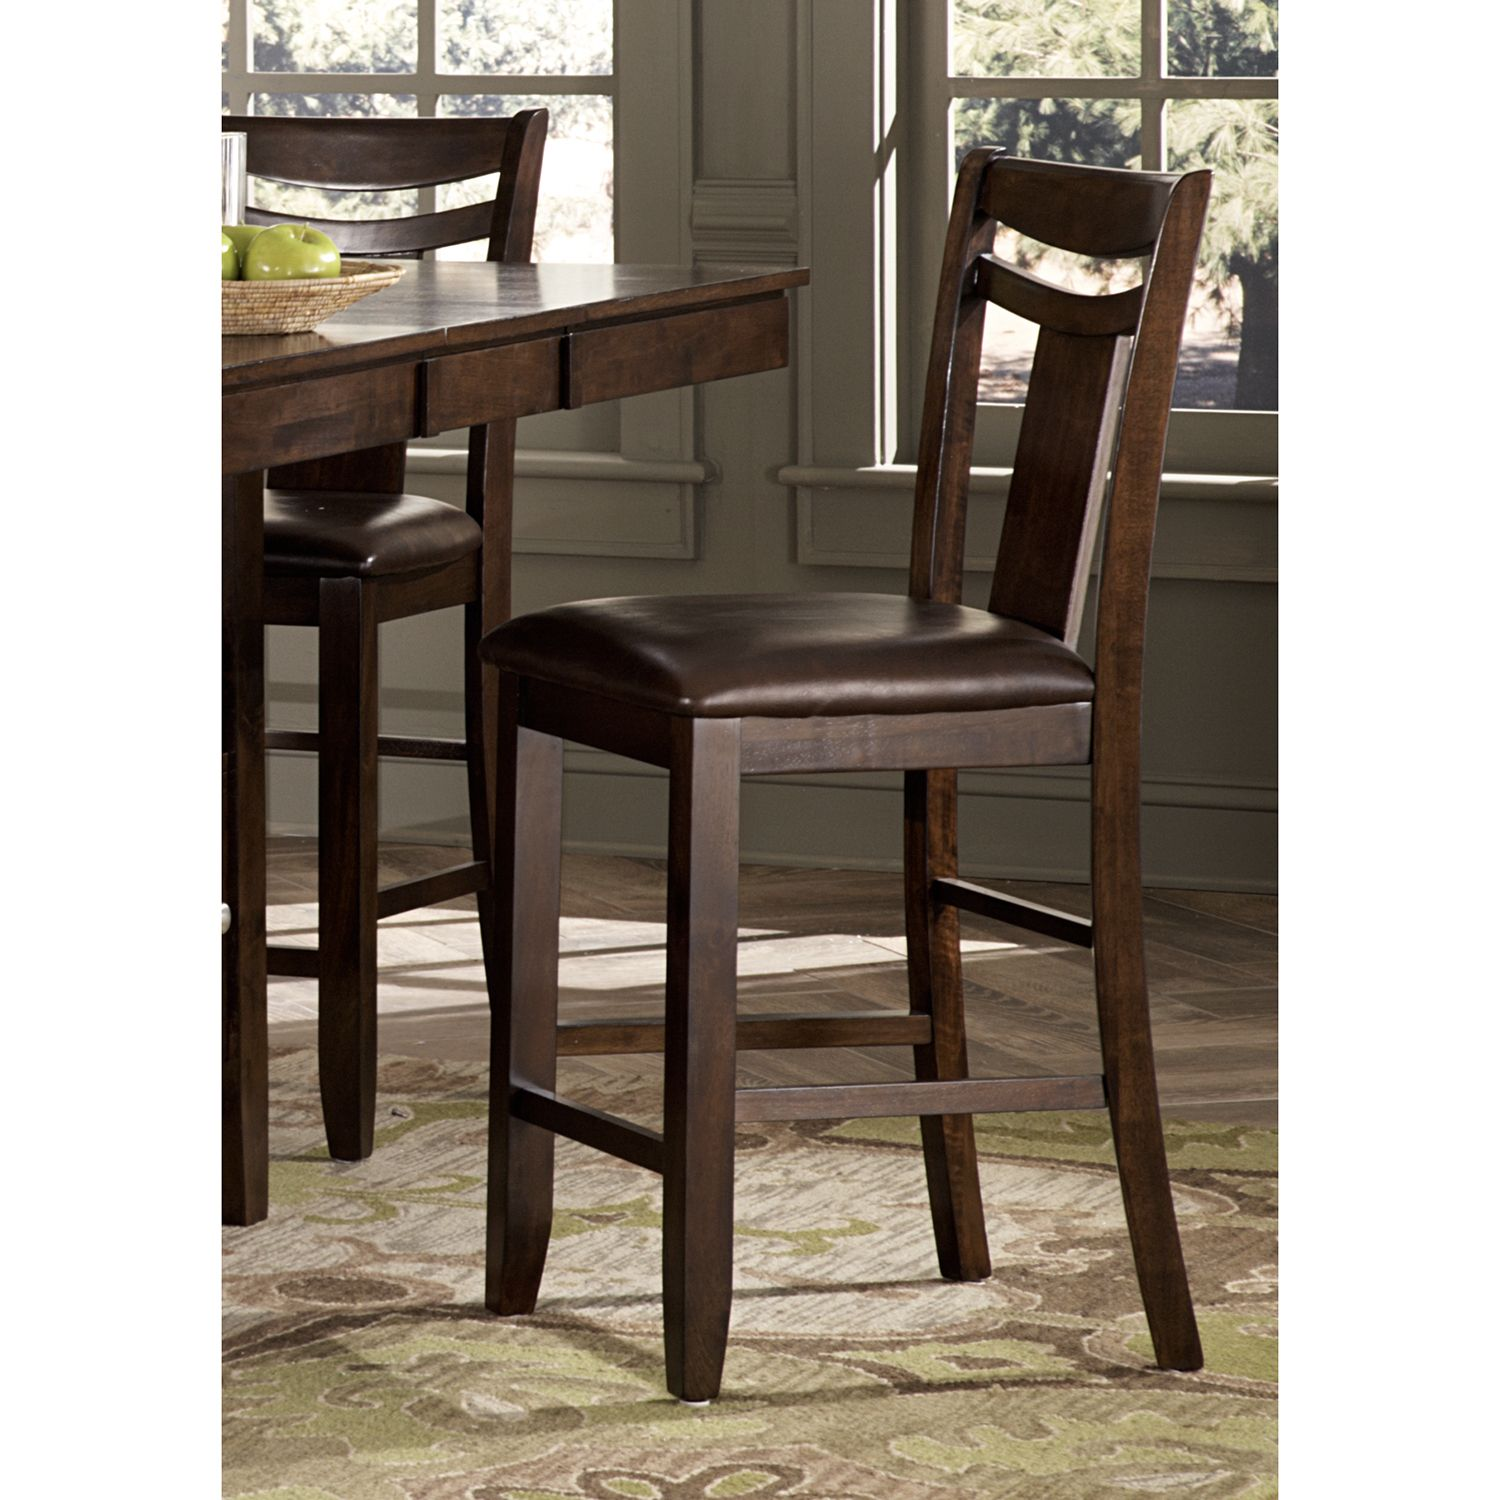 Shop Tribecca Home Watson 24 Inch Counter Height Chair: Sophistication Merges With Elegant Lines And Classic